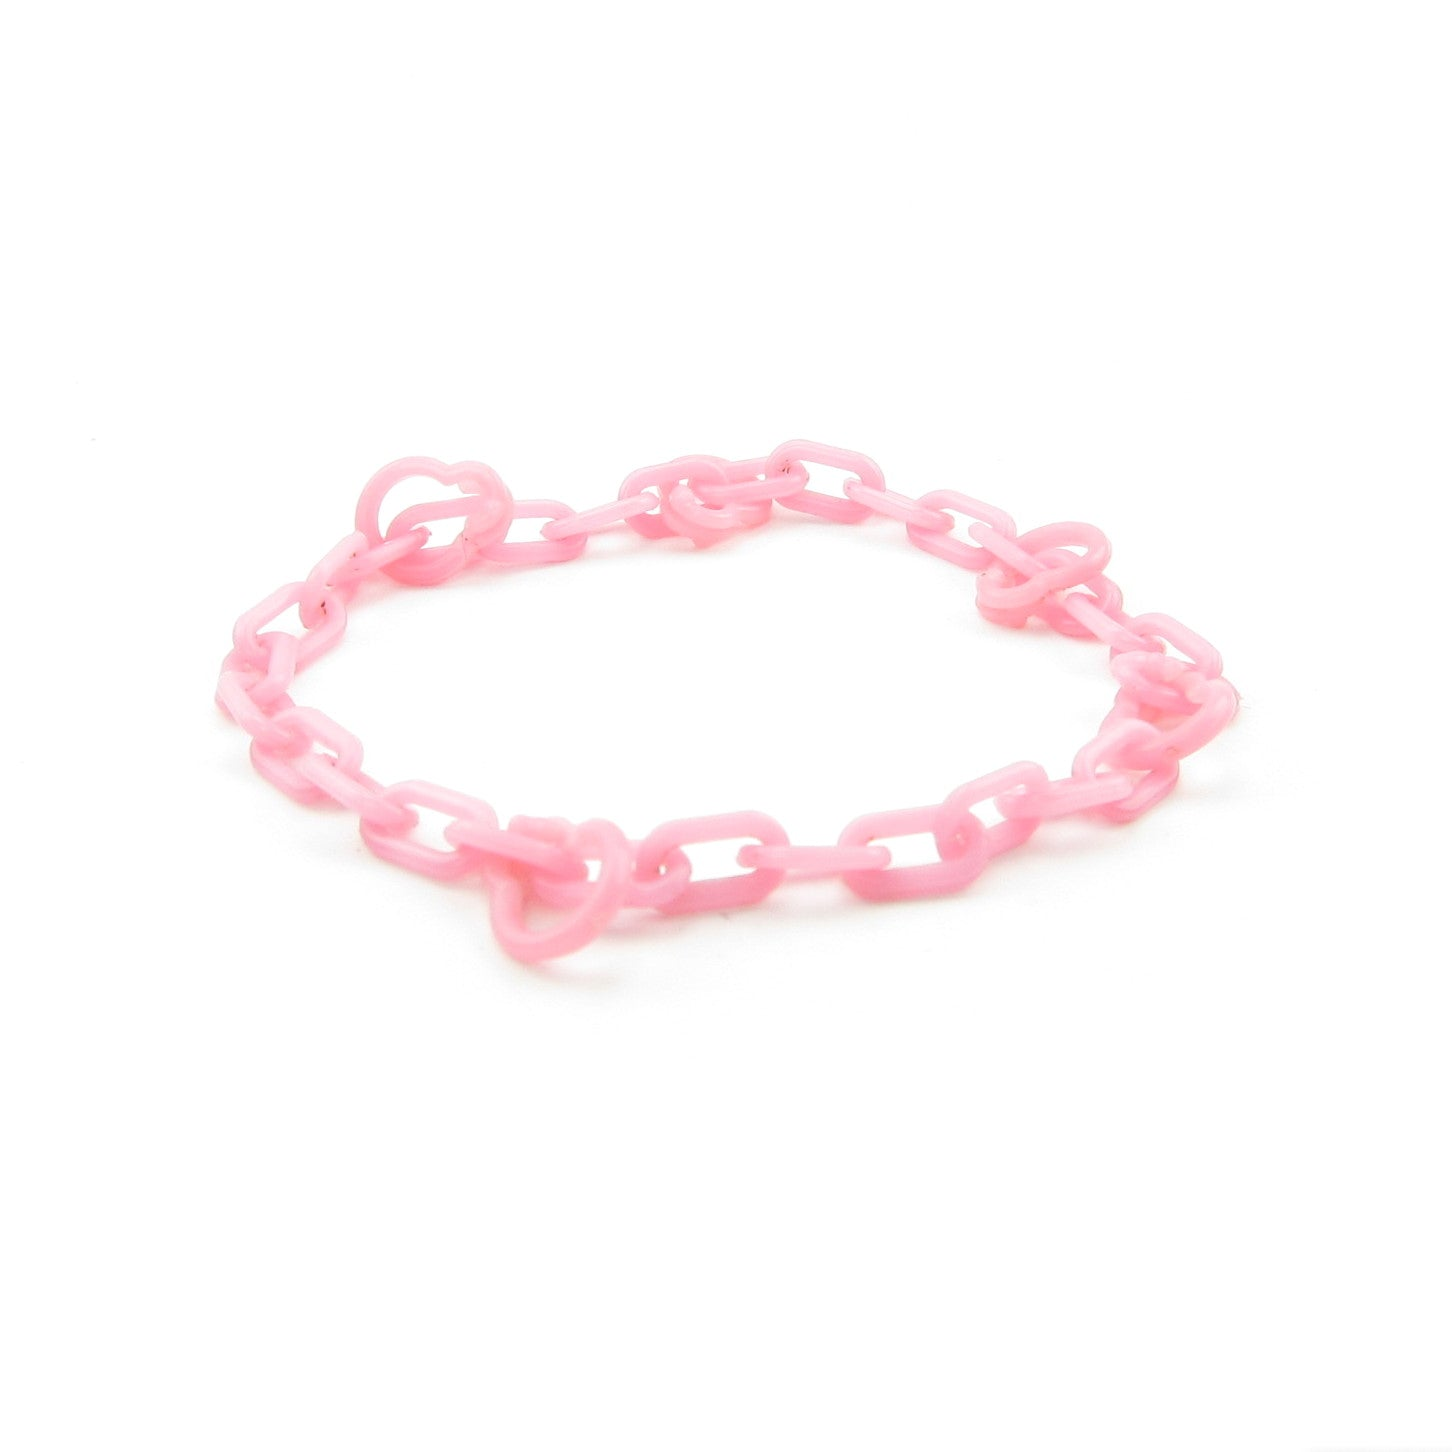 Pink plastic charm bracelet for My Little Pony mommy or mummy charms